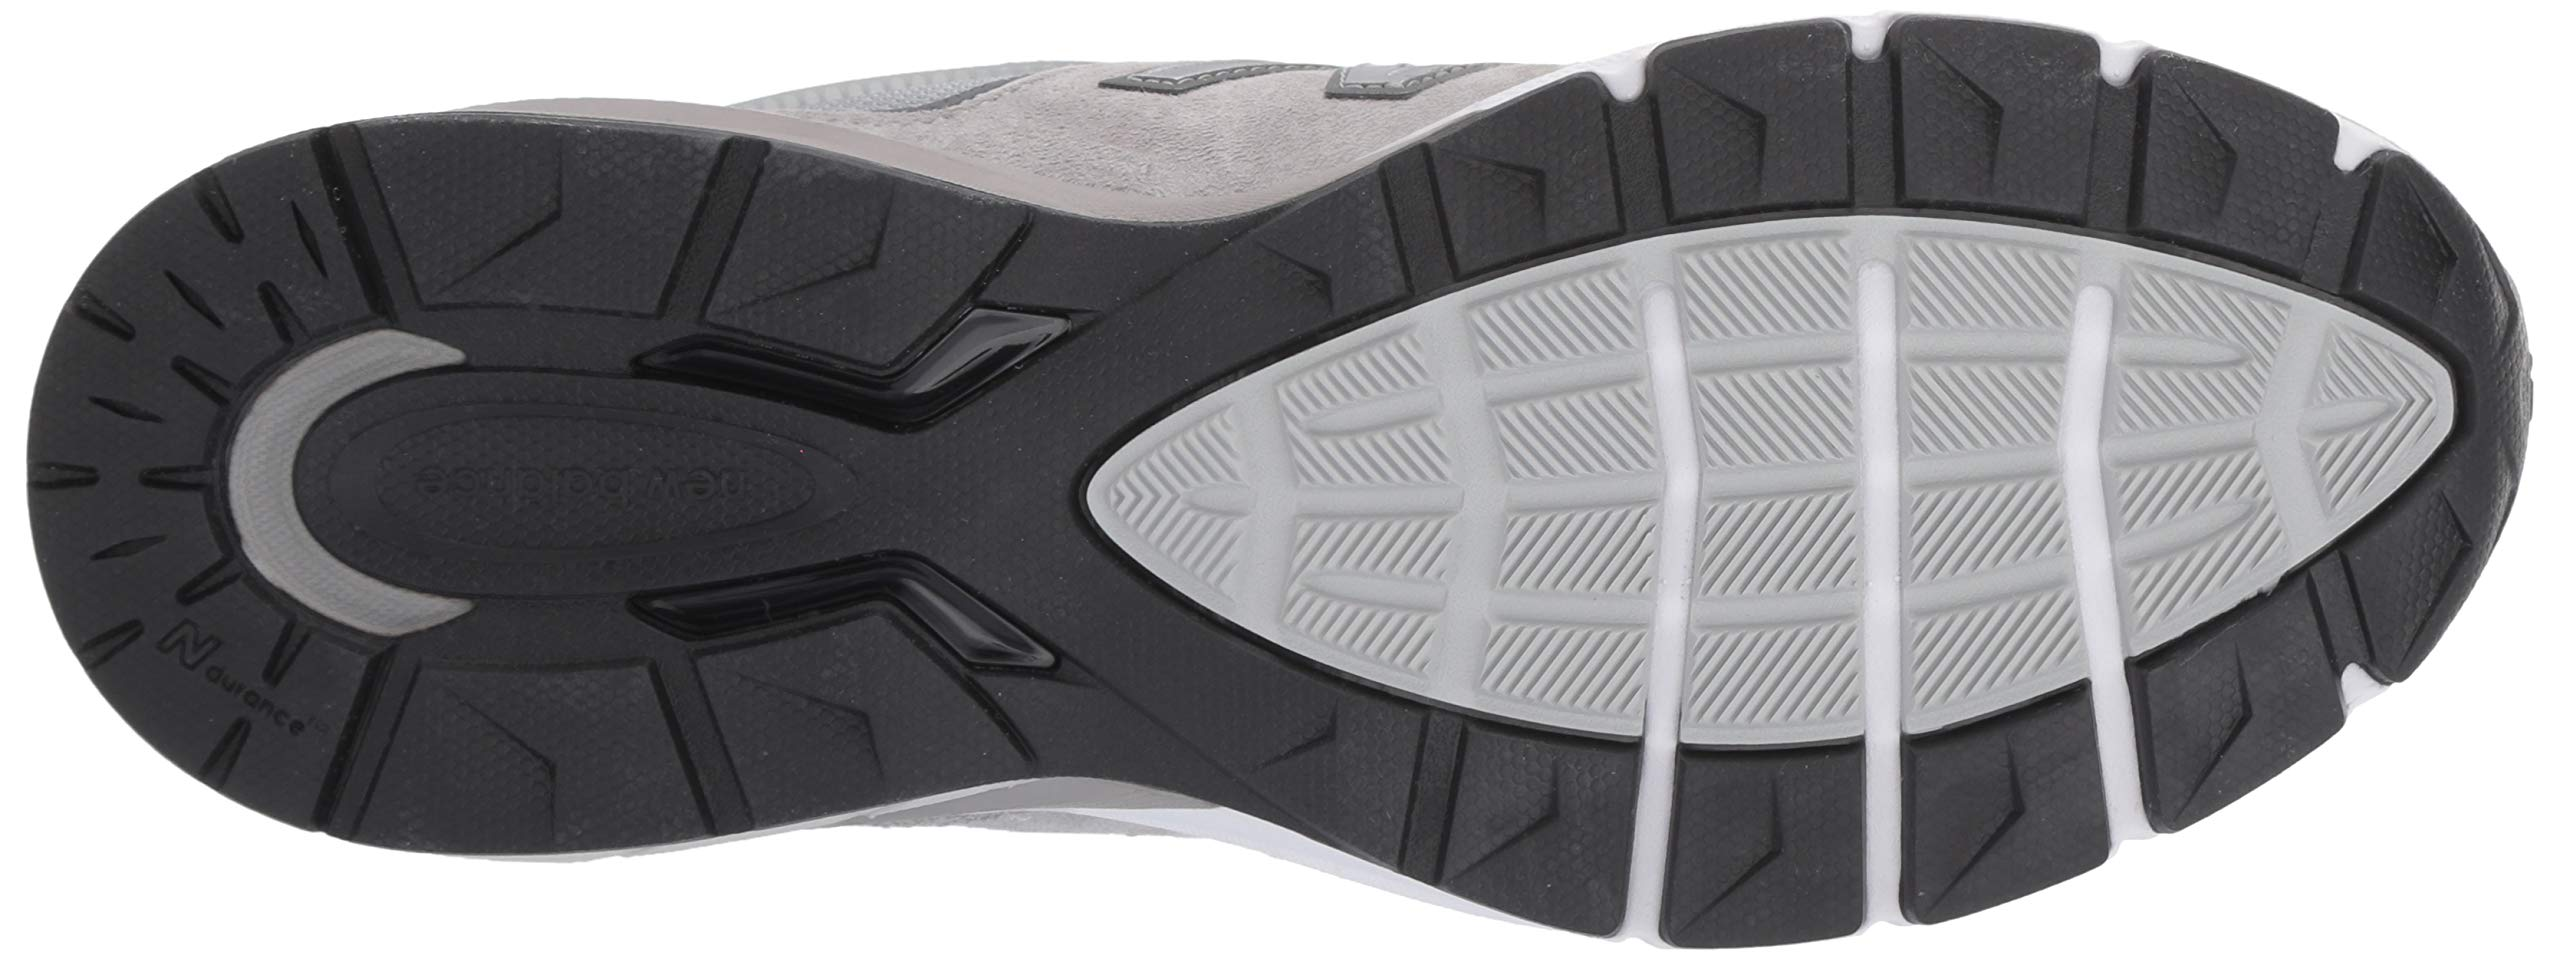 super popular fc523 cd0ef Amazon.com  New Balance Athletic Shoe, Inc.